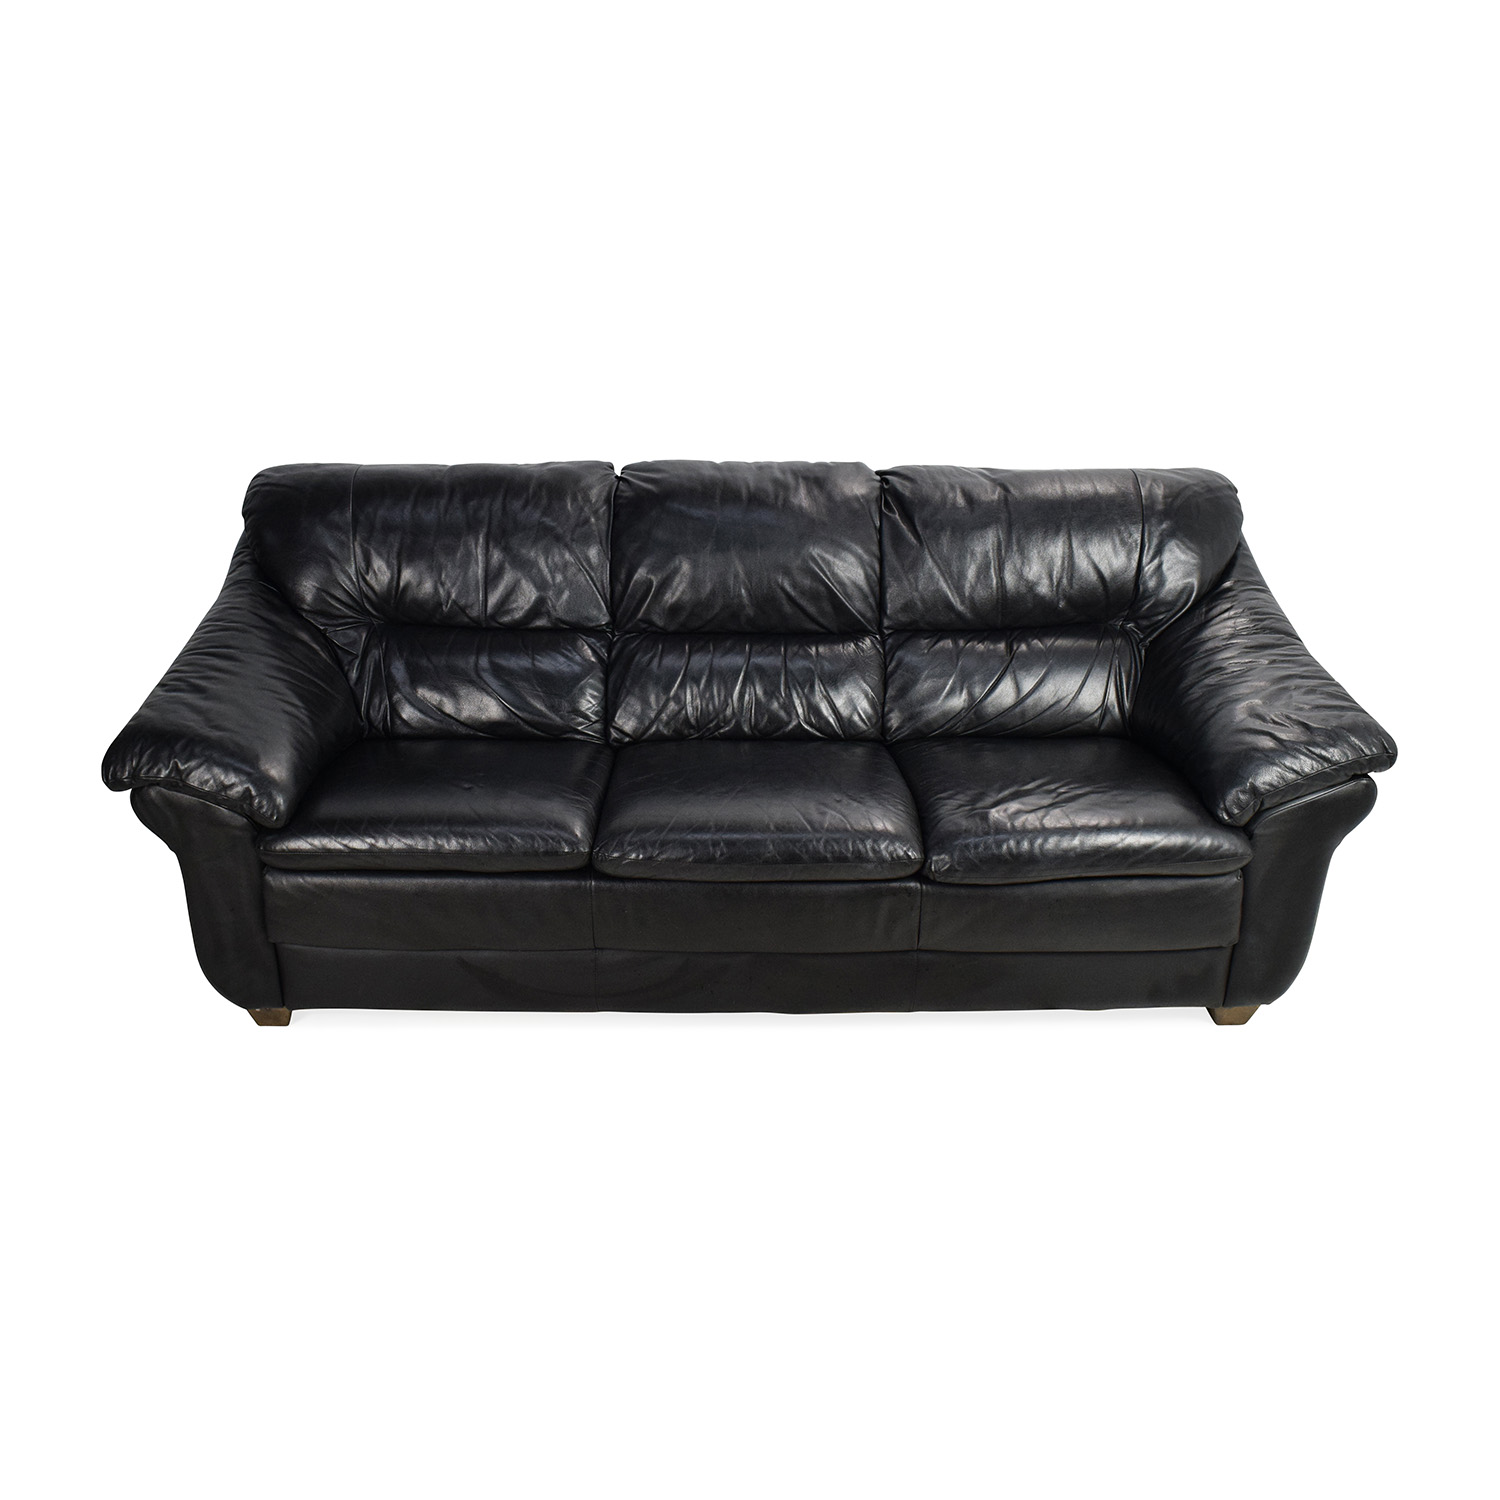 Incredible 79 Off Natuzzi Natuzzi Italian Black Leather Sofa Sofas Ibusinesslaw Wood Chair Design Ideas Ibusinesslaworg